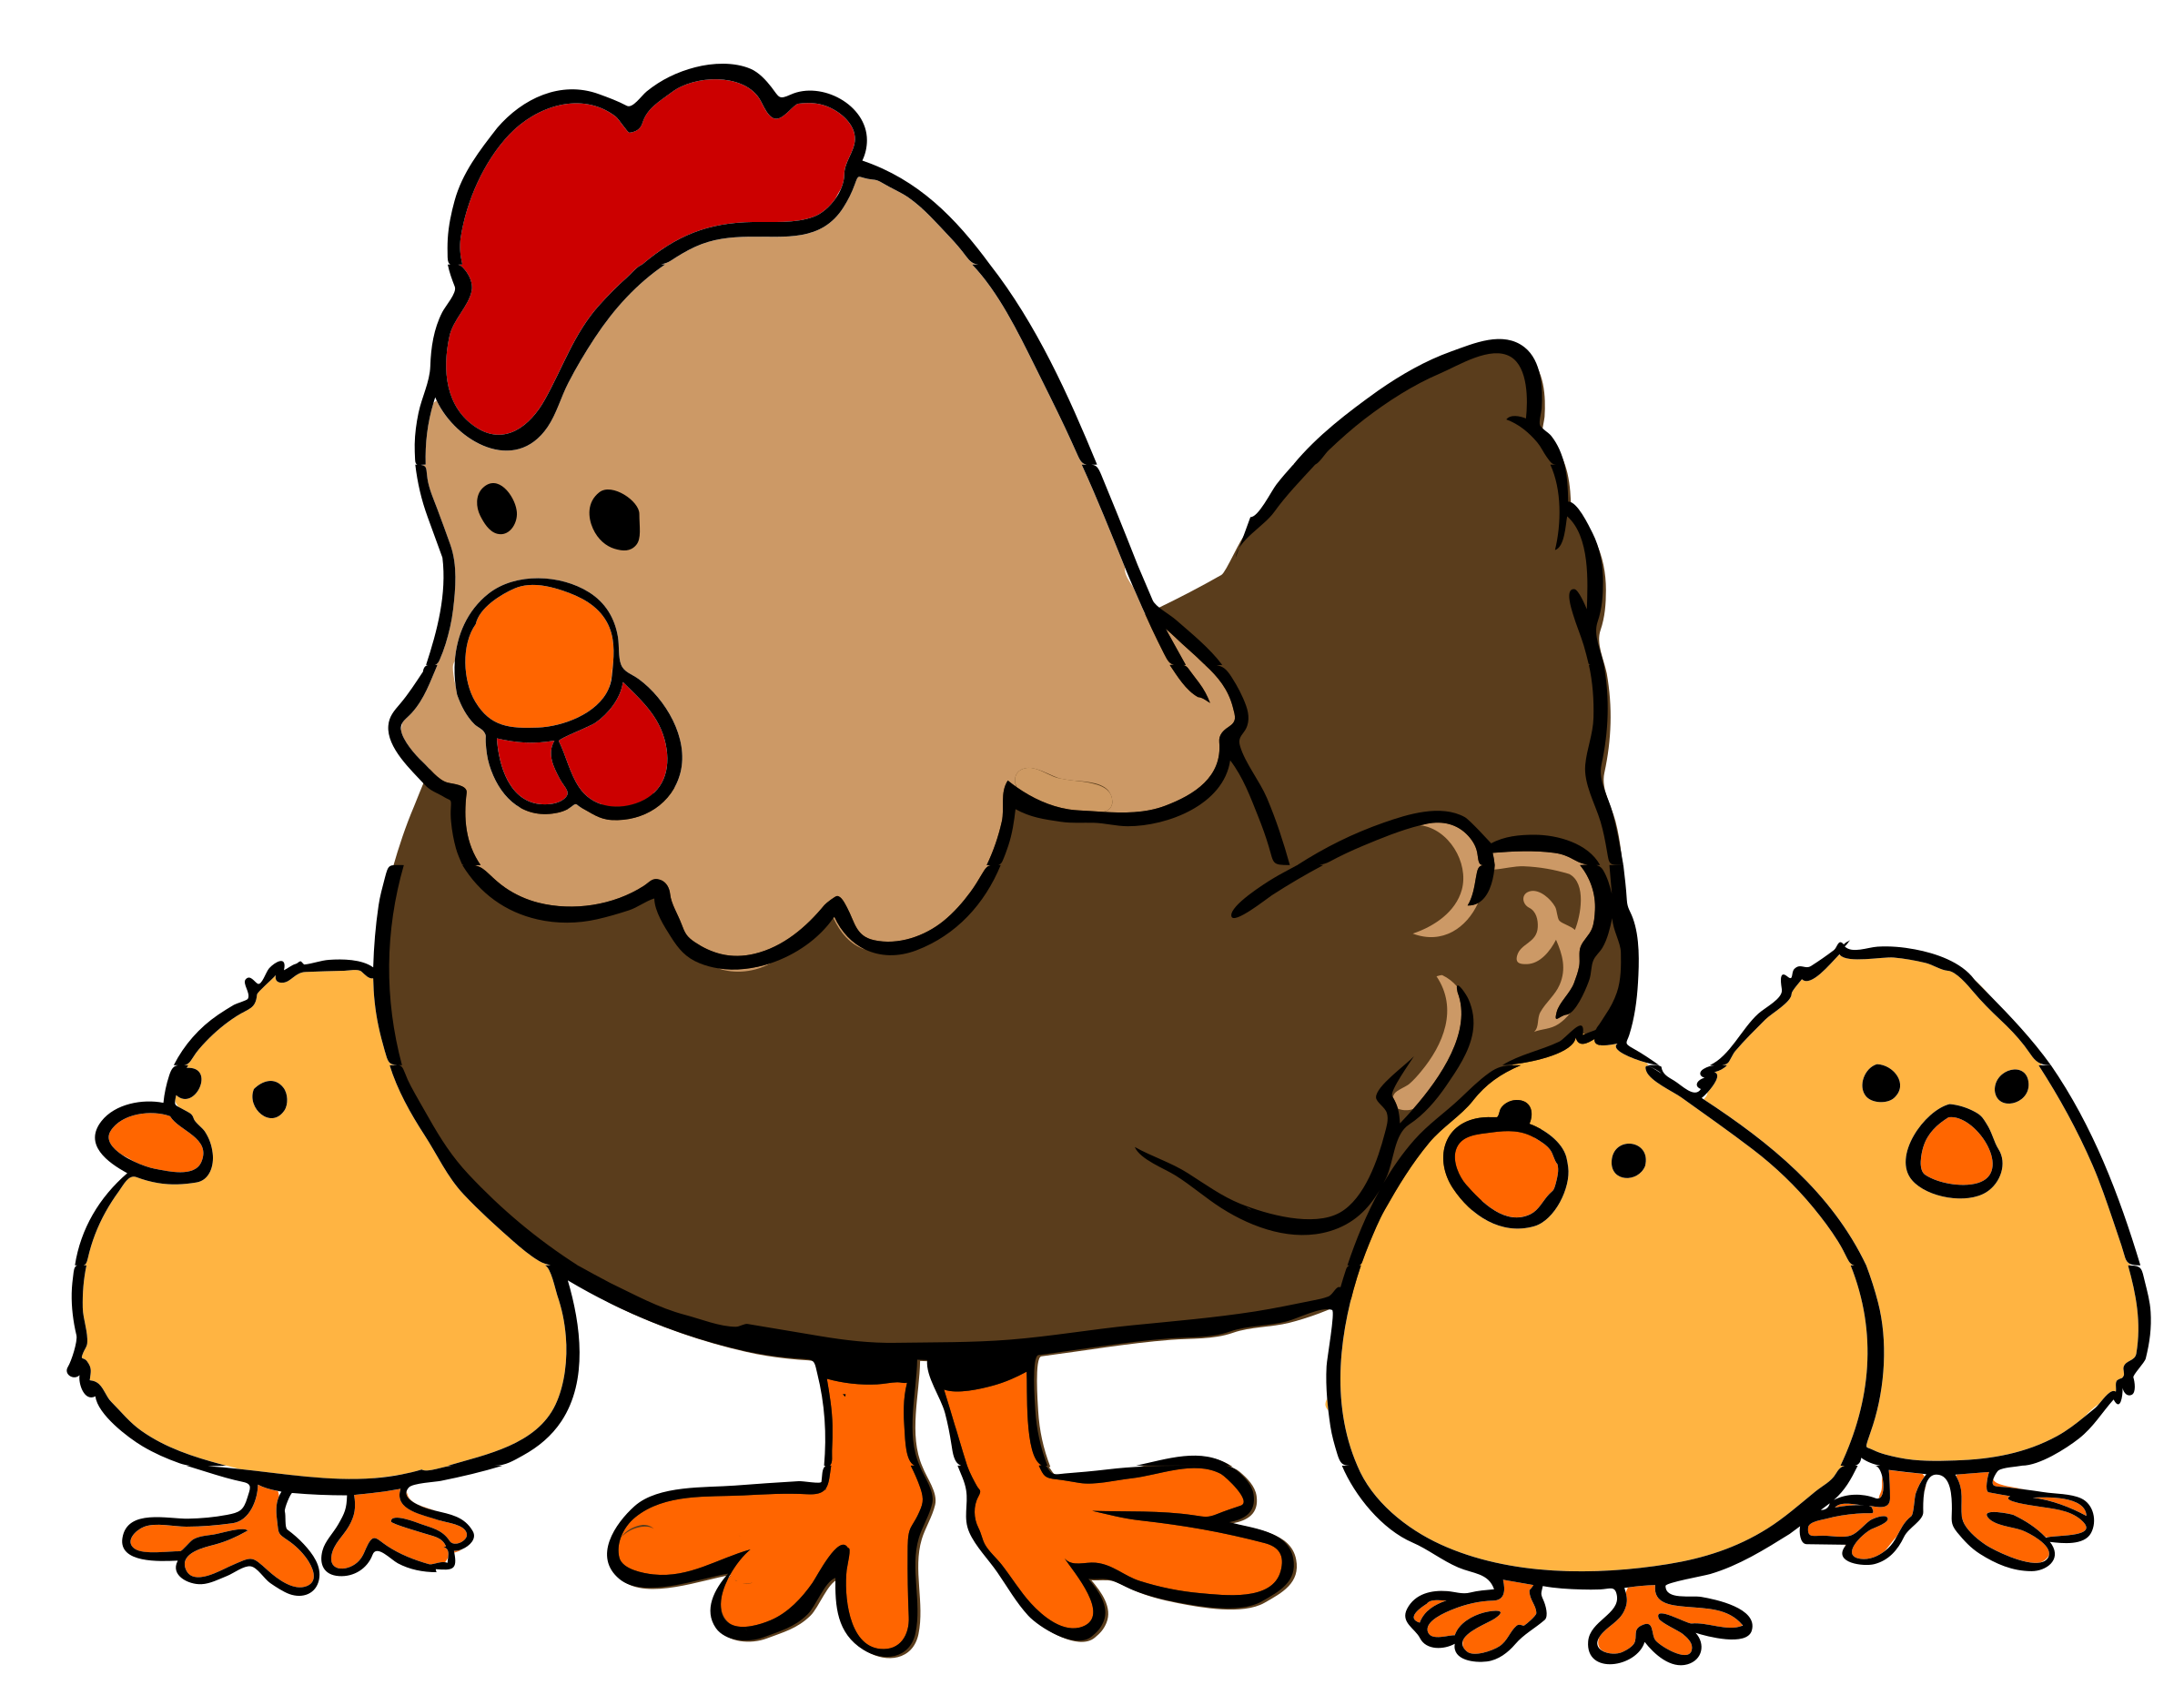 Brown cross with lamb in front clipart jpg freeuse Hen and Chicks cartoon style by qubodup | Chick | Pinterest | Hens ... jpg freeuse